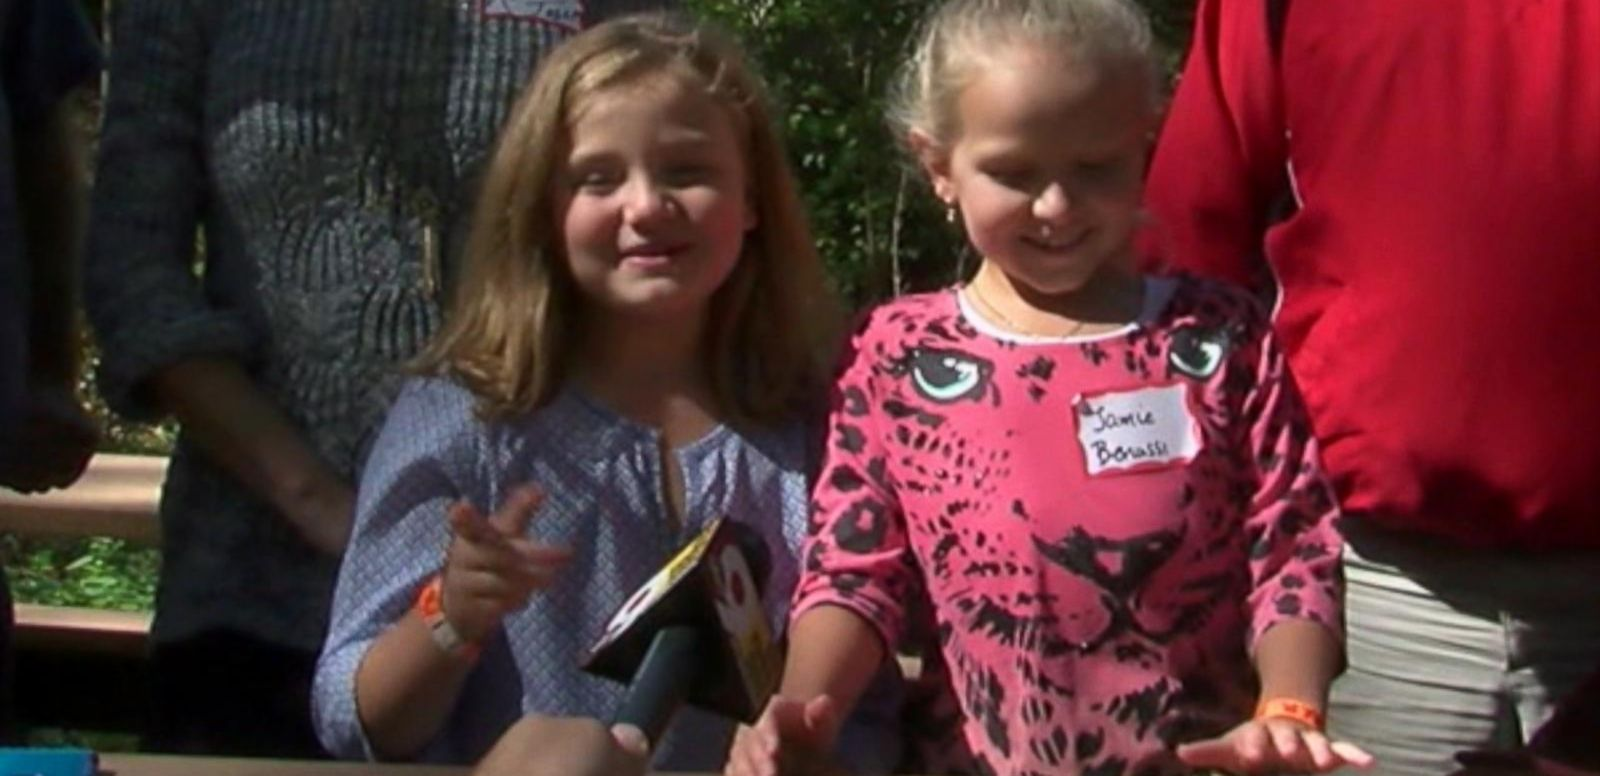 VIDEO: Piper Joseph, 9, met her biological parents and 10-year-old sister Jamie after learning she was born from an adopted frozen embryo.